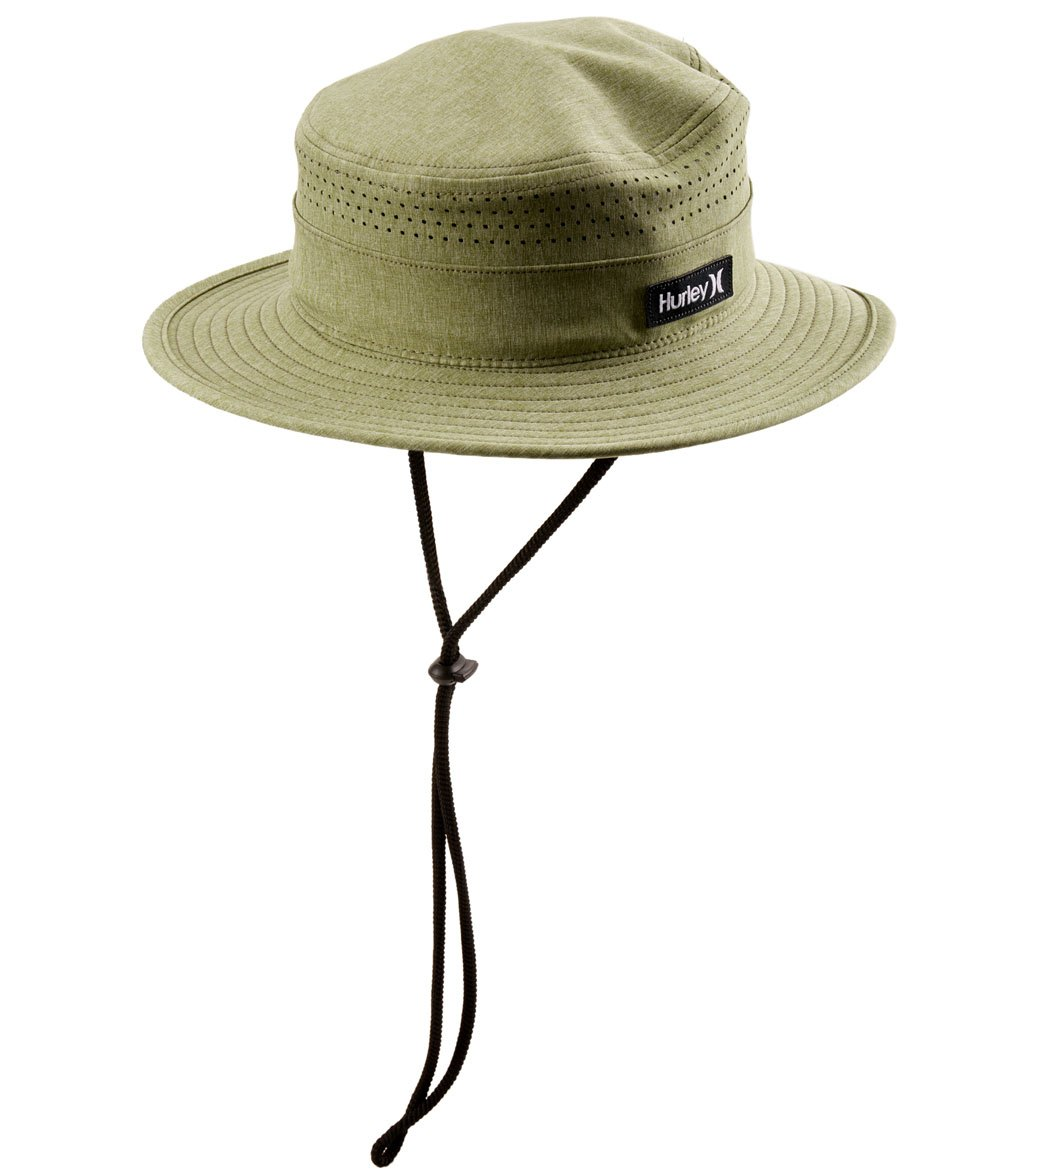 236a3d629dfad Hurley Men s Surfari Hat at SwimOutlet.com